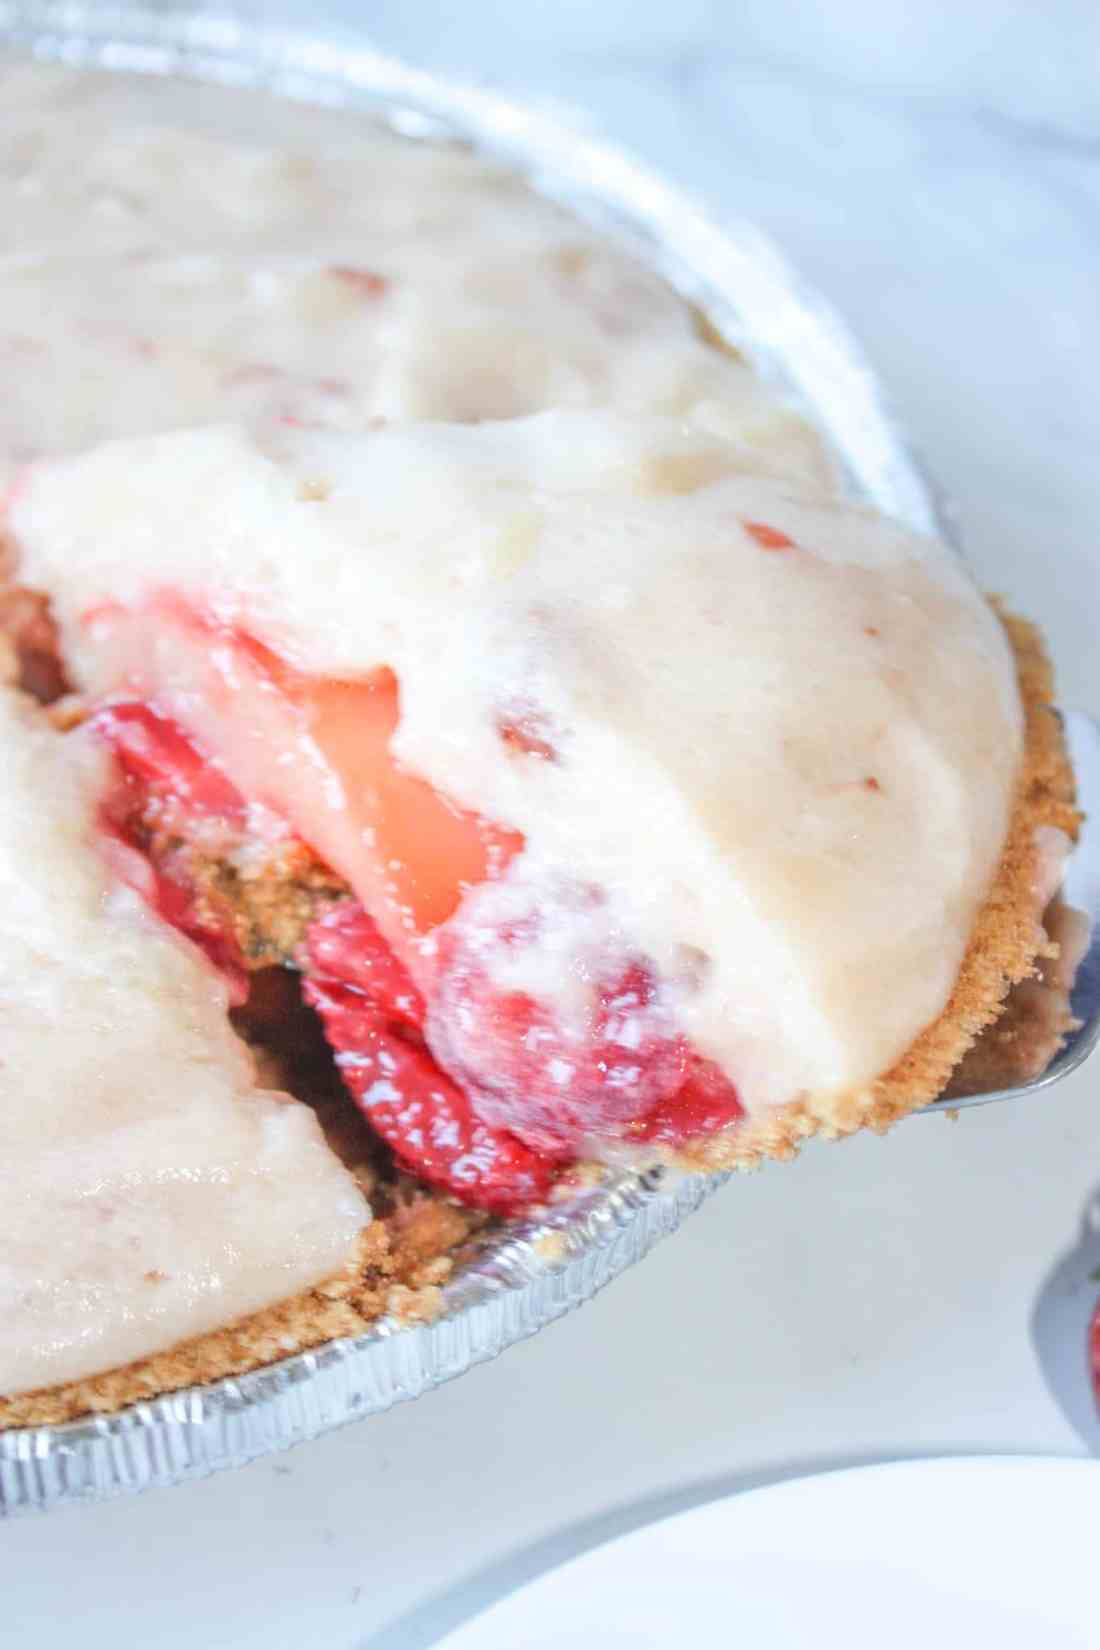 Lemon Strawberry Pie is a delectable blend of summer flavours layered on top of a gluten free graham crust.